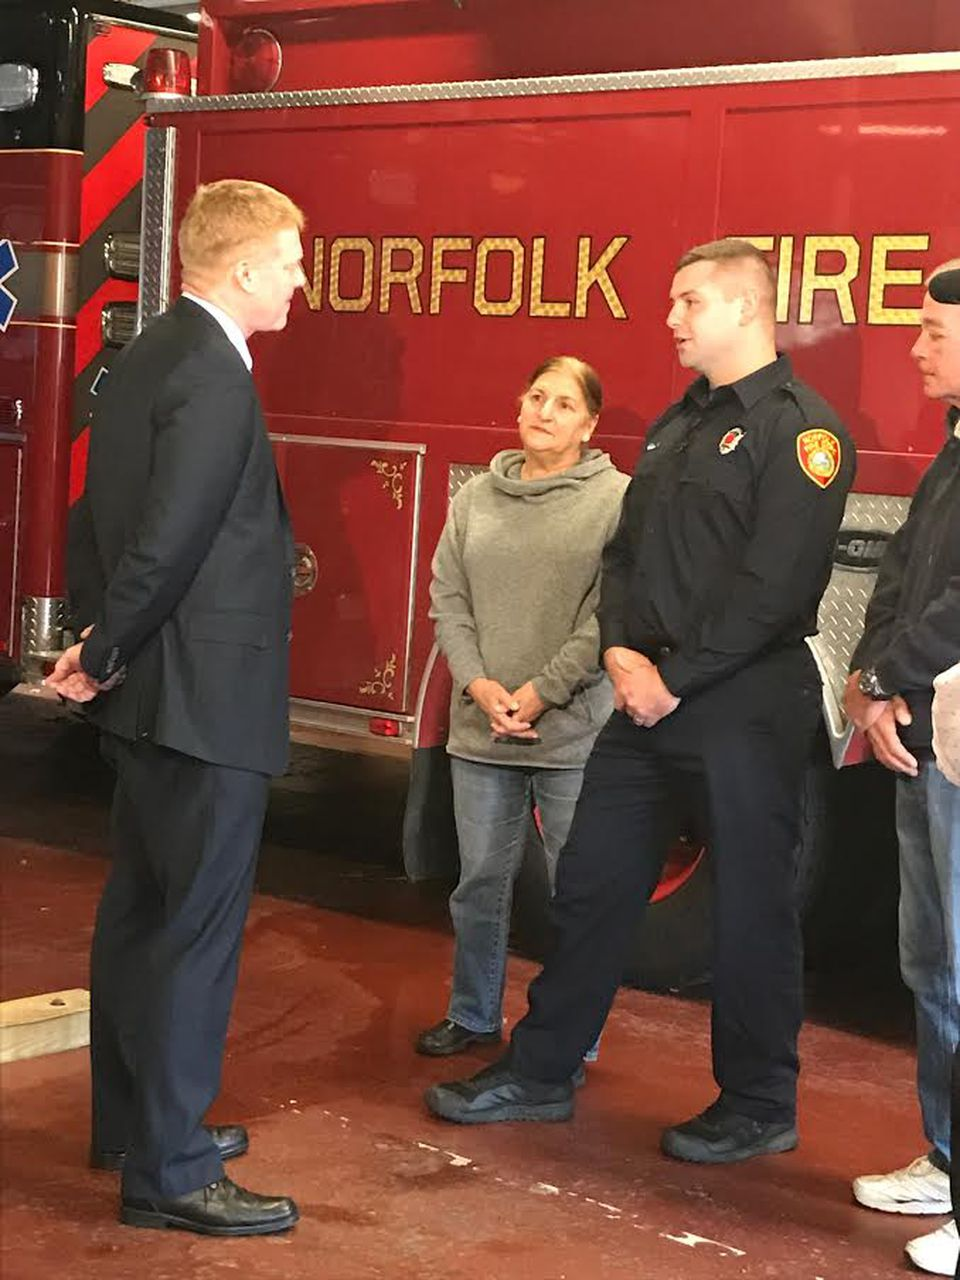 Podsiadlo, left, and Brady, right with his parents, talk at the Norfolk fire department.